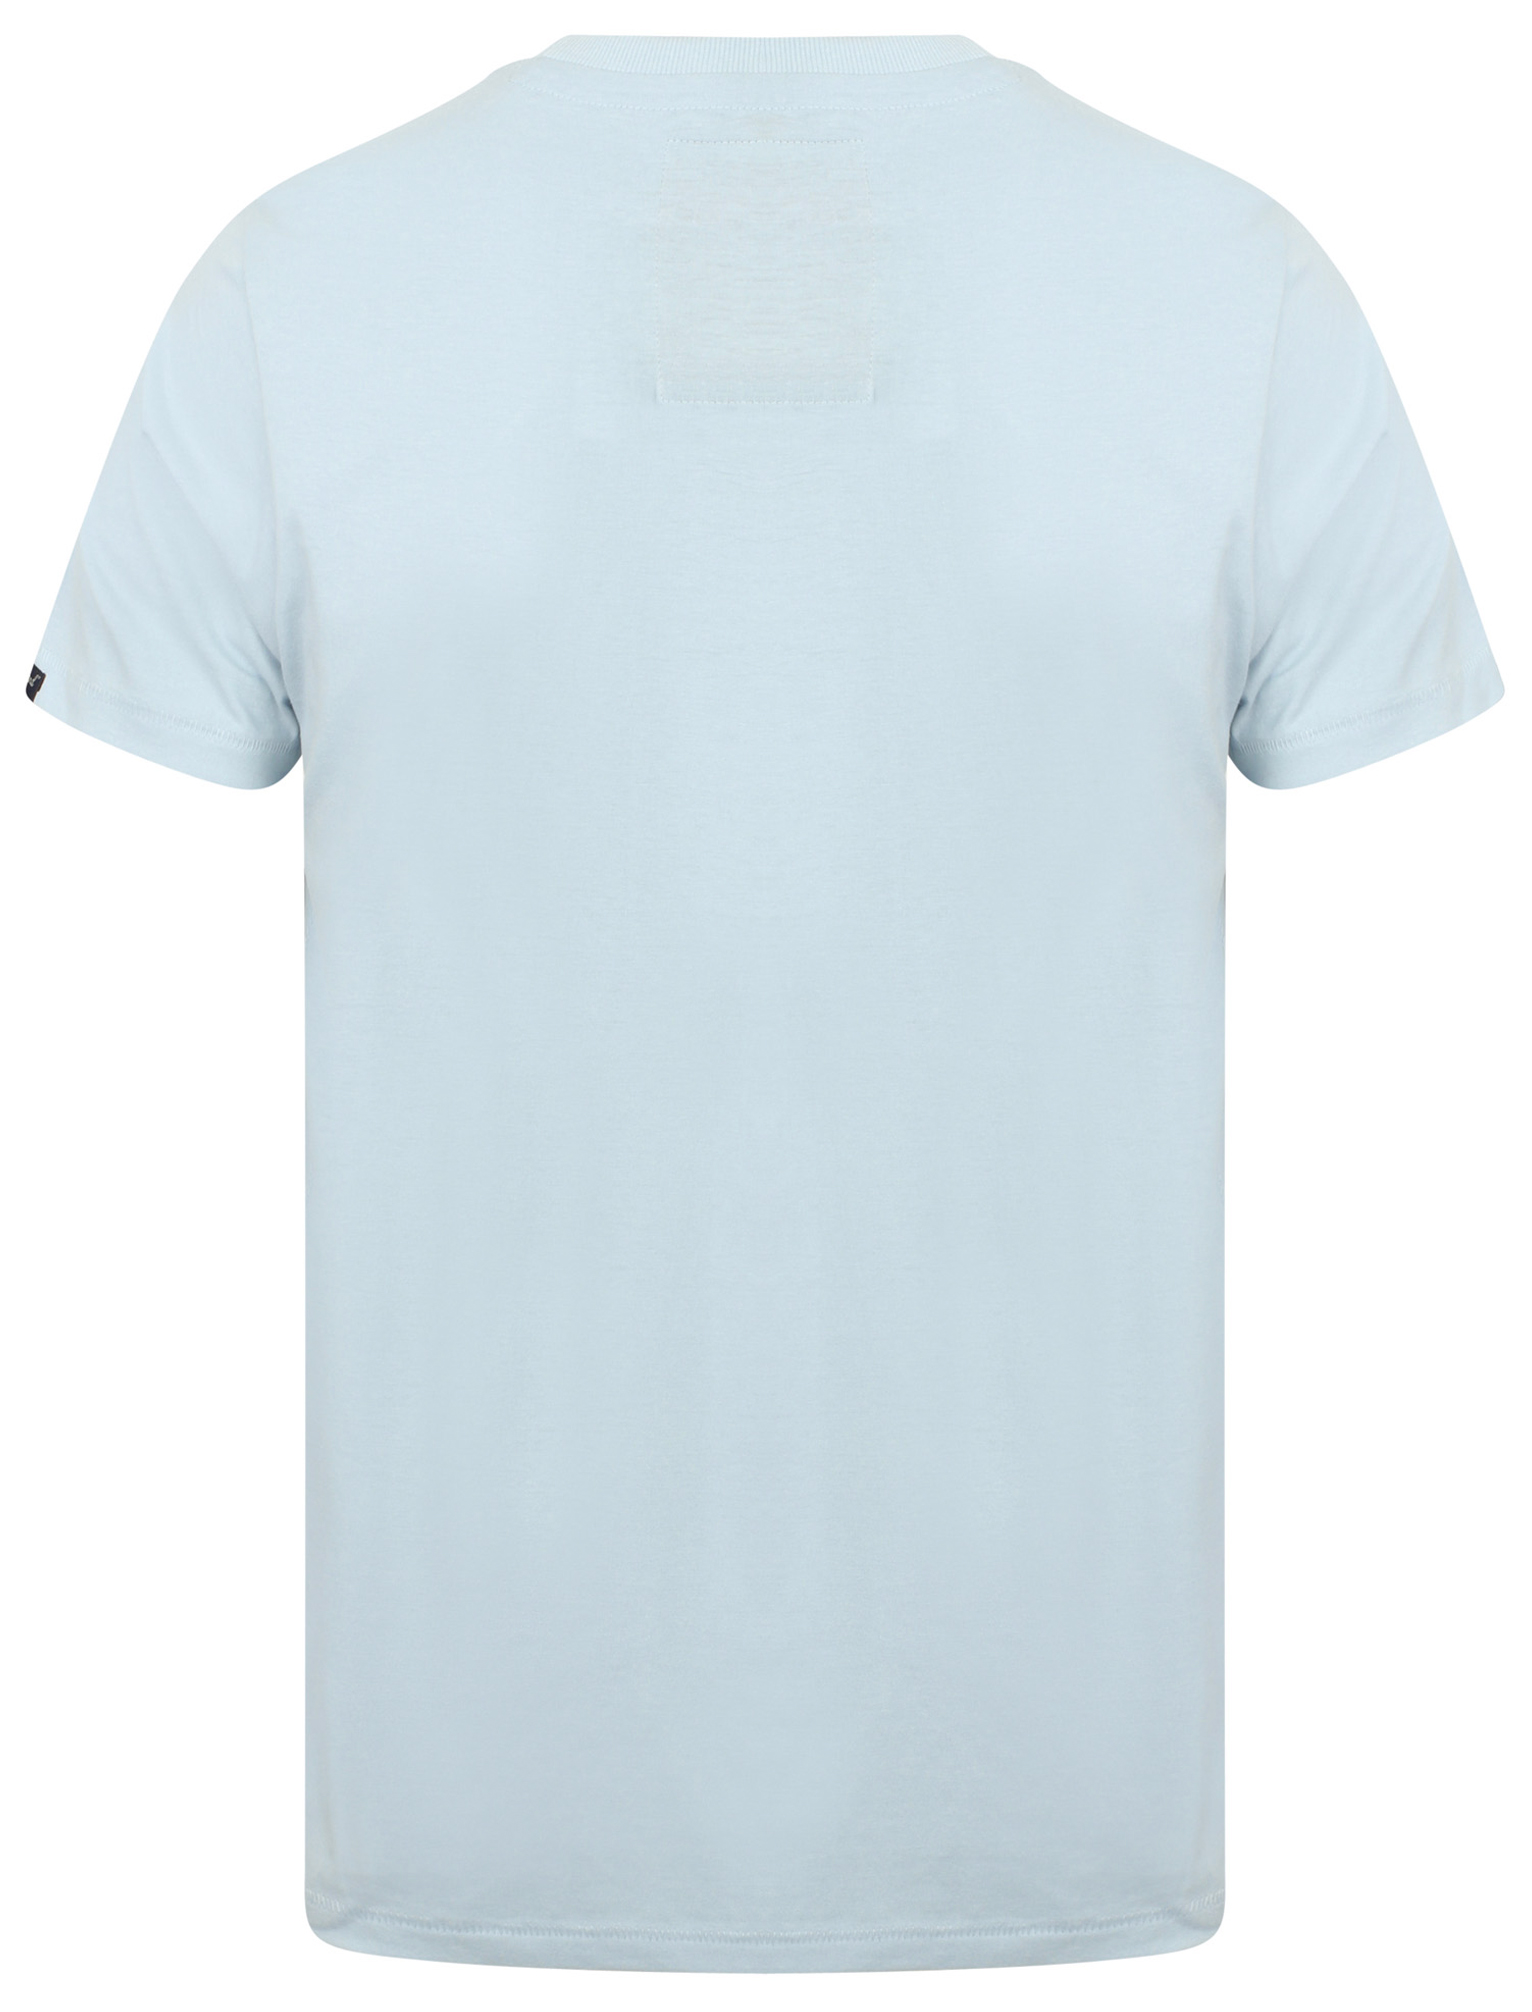 New-Mens-Tokyo-Laundry-Montecarlo-Crew-Neck-Cotton-Rich-Soft-T-Shirt-Size-S-XXL thumbnail 15